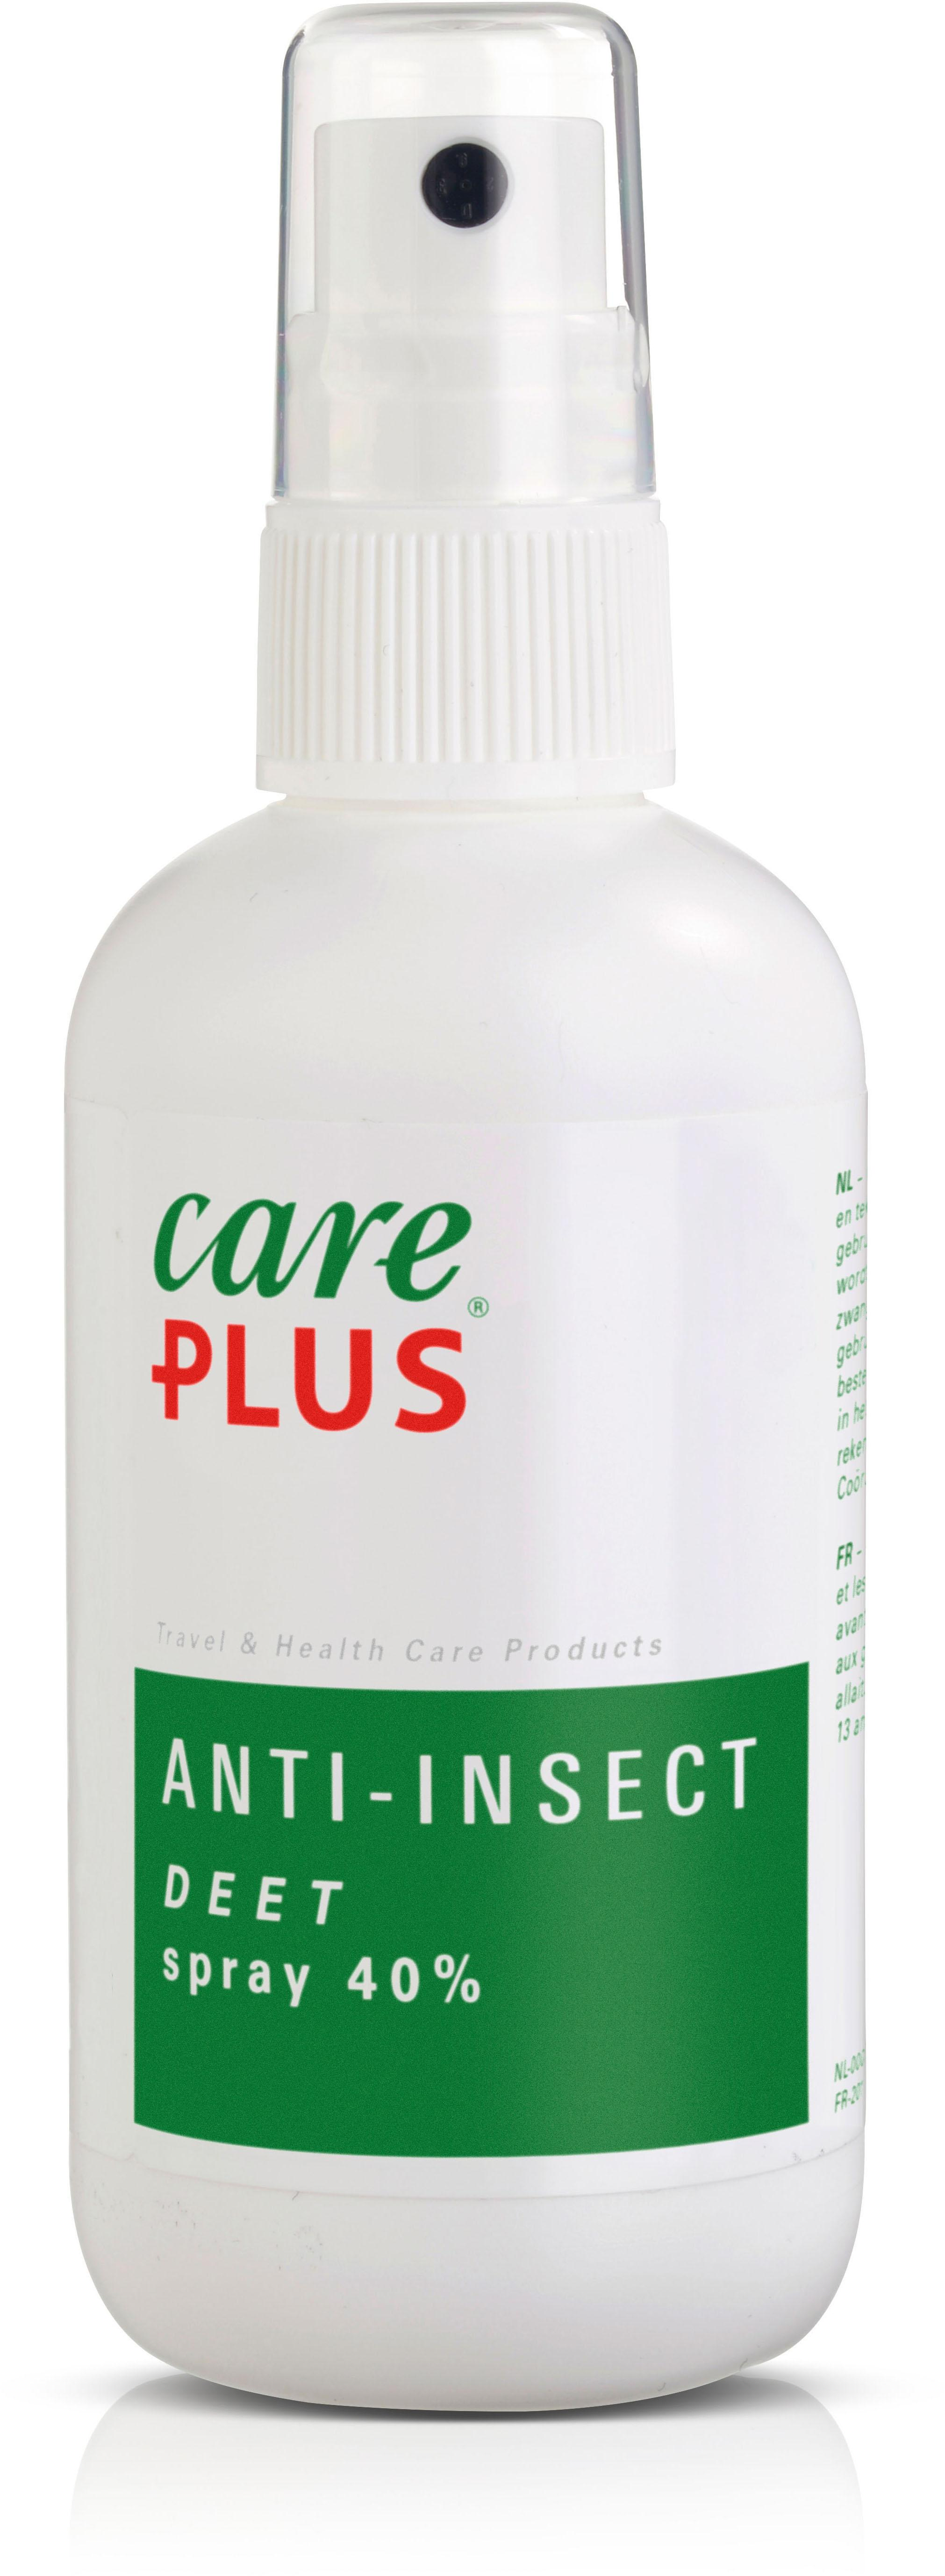 Anti-Insect Deet 40% spray, 100 ml